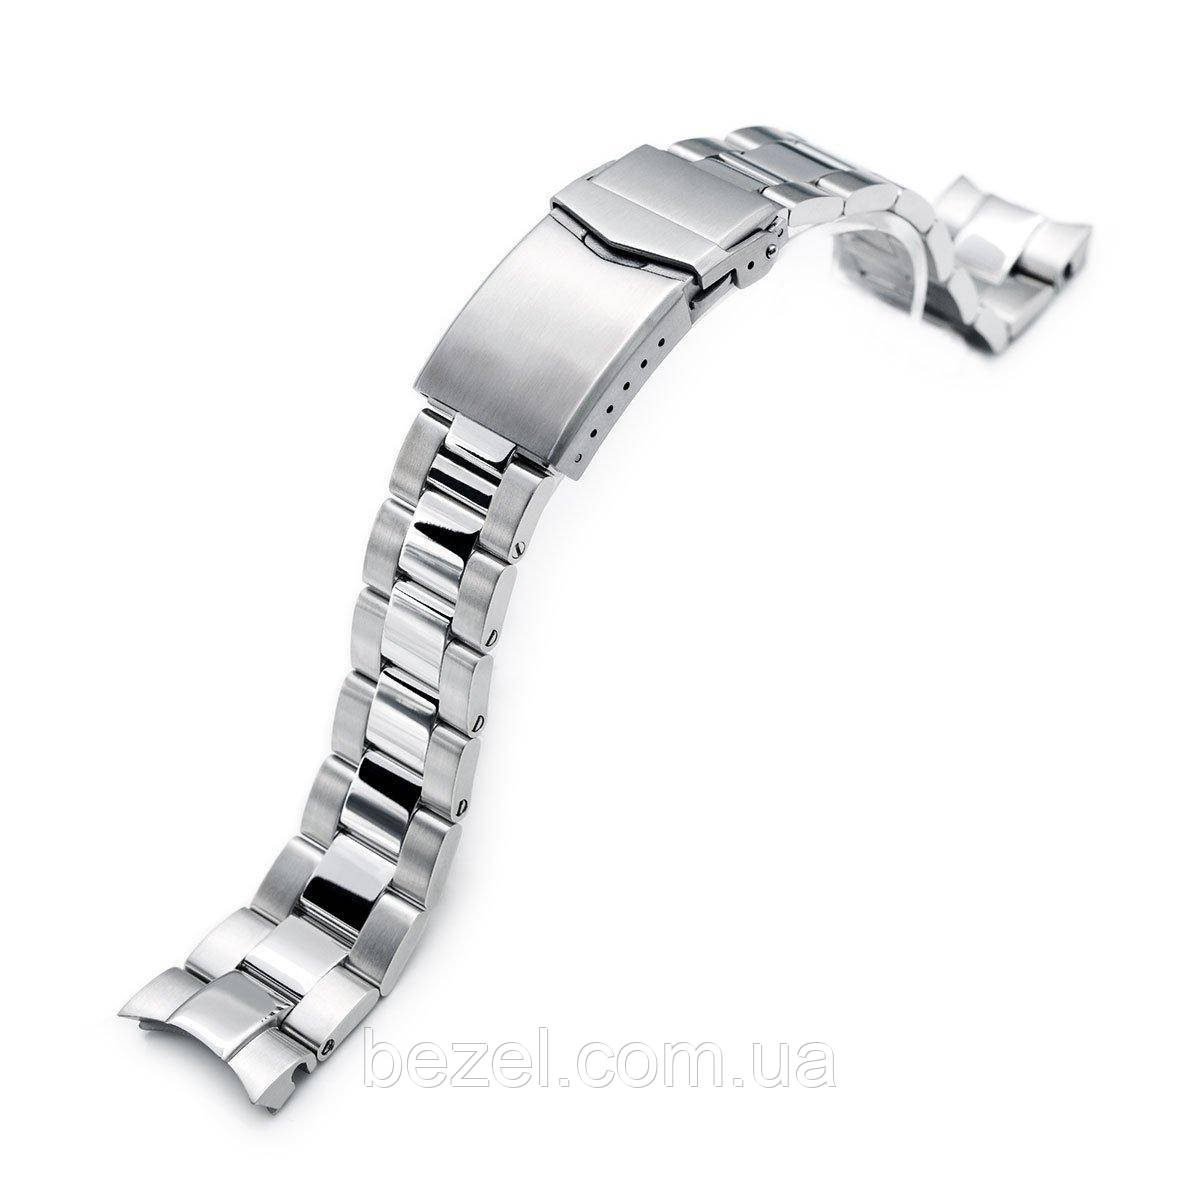 20mm Super 3D Oyster watch band for Seiko Alpinist SARB017, V-Clasp Brushed & Polished